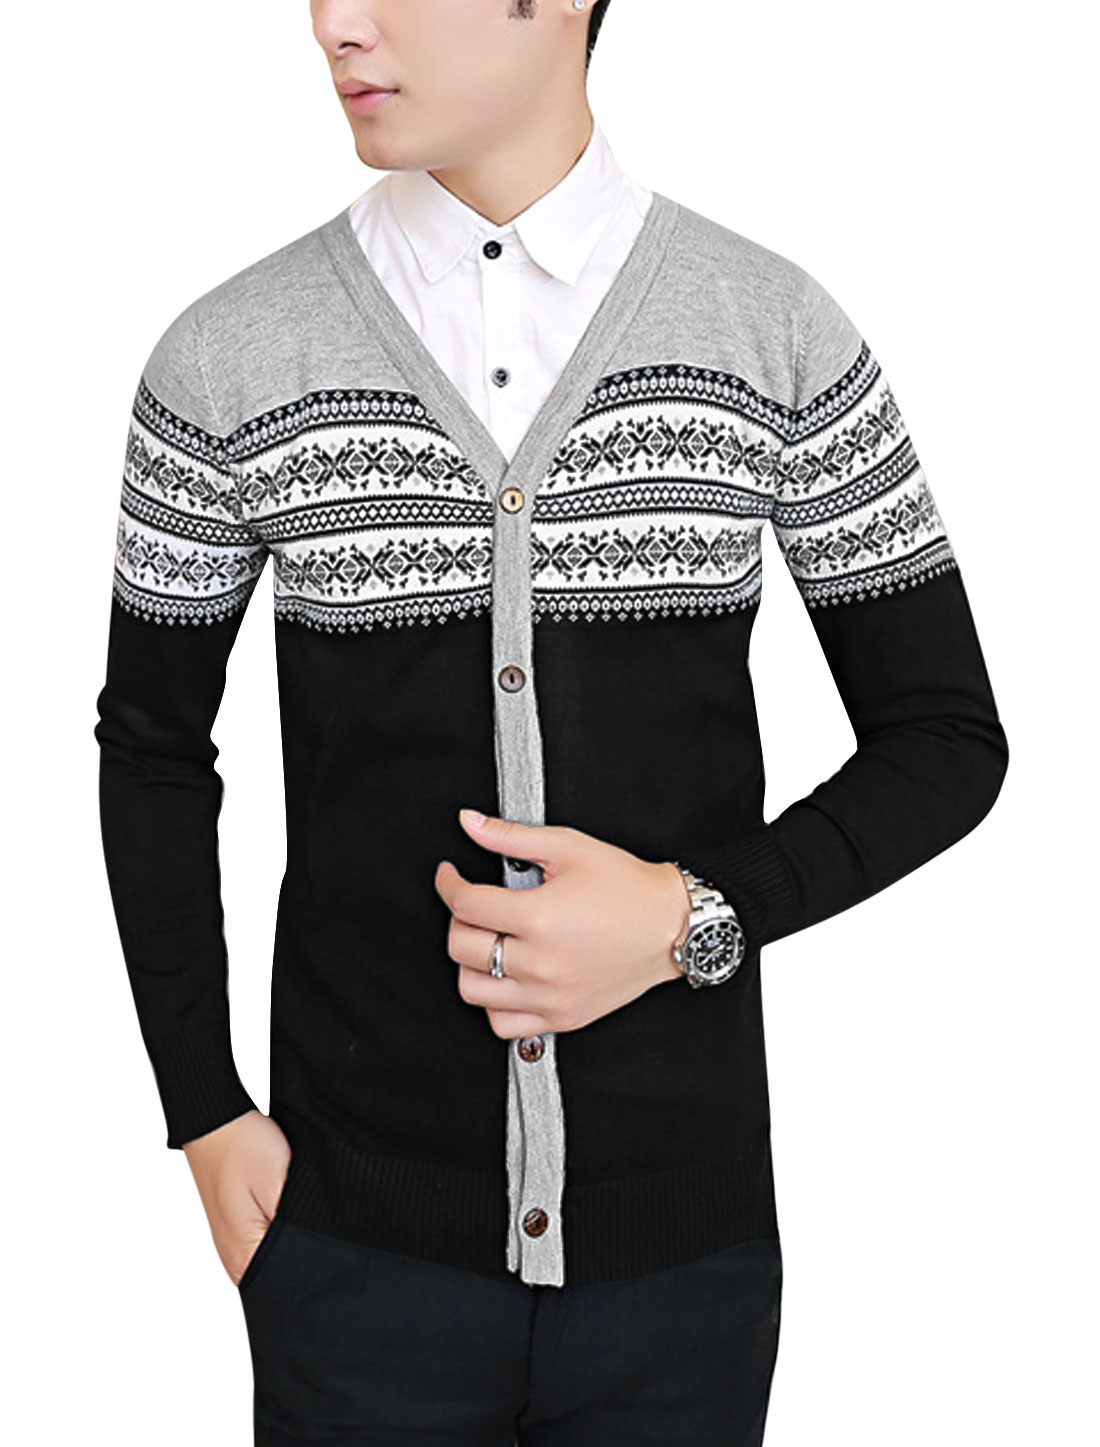 Men Contrast Color Geometric Pattern Slim Cardigan Light Gray Black S